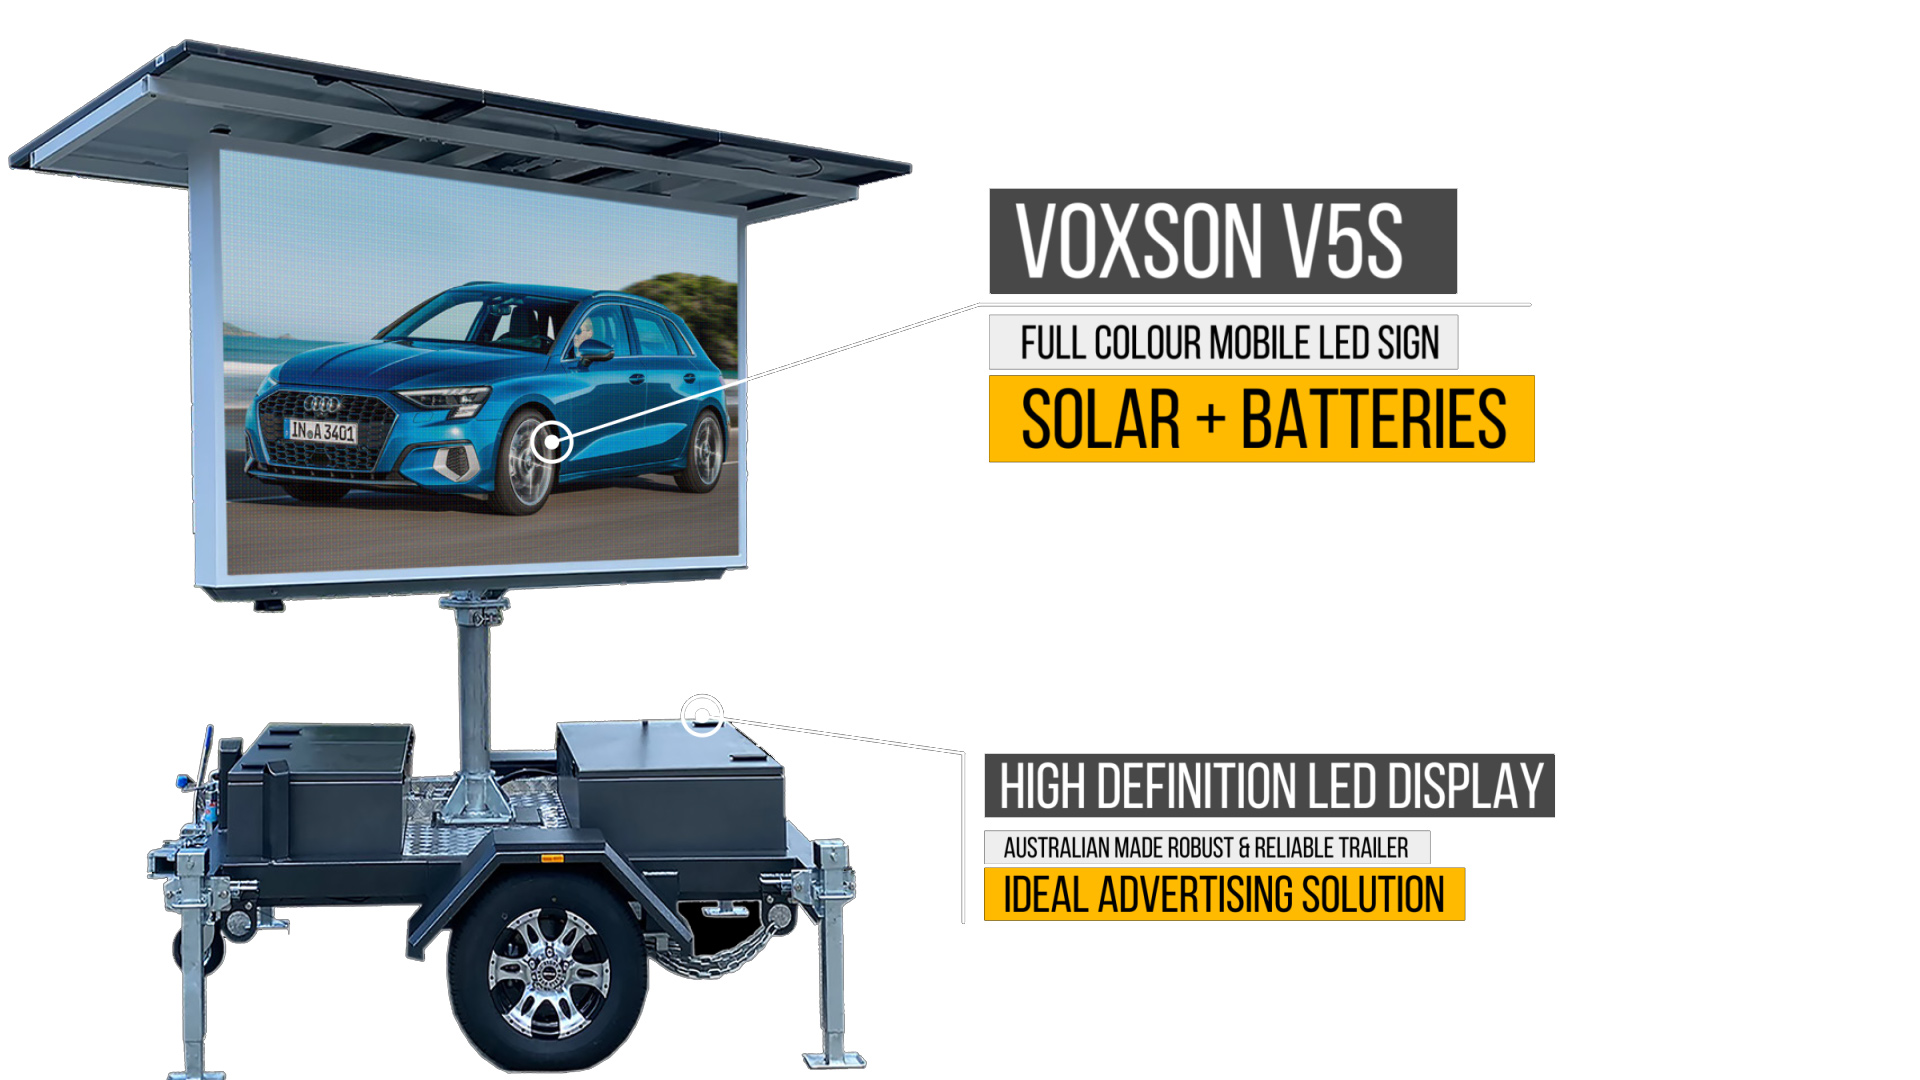 Introducing the Voxson V4s, a full colour Mobile LED Sign